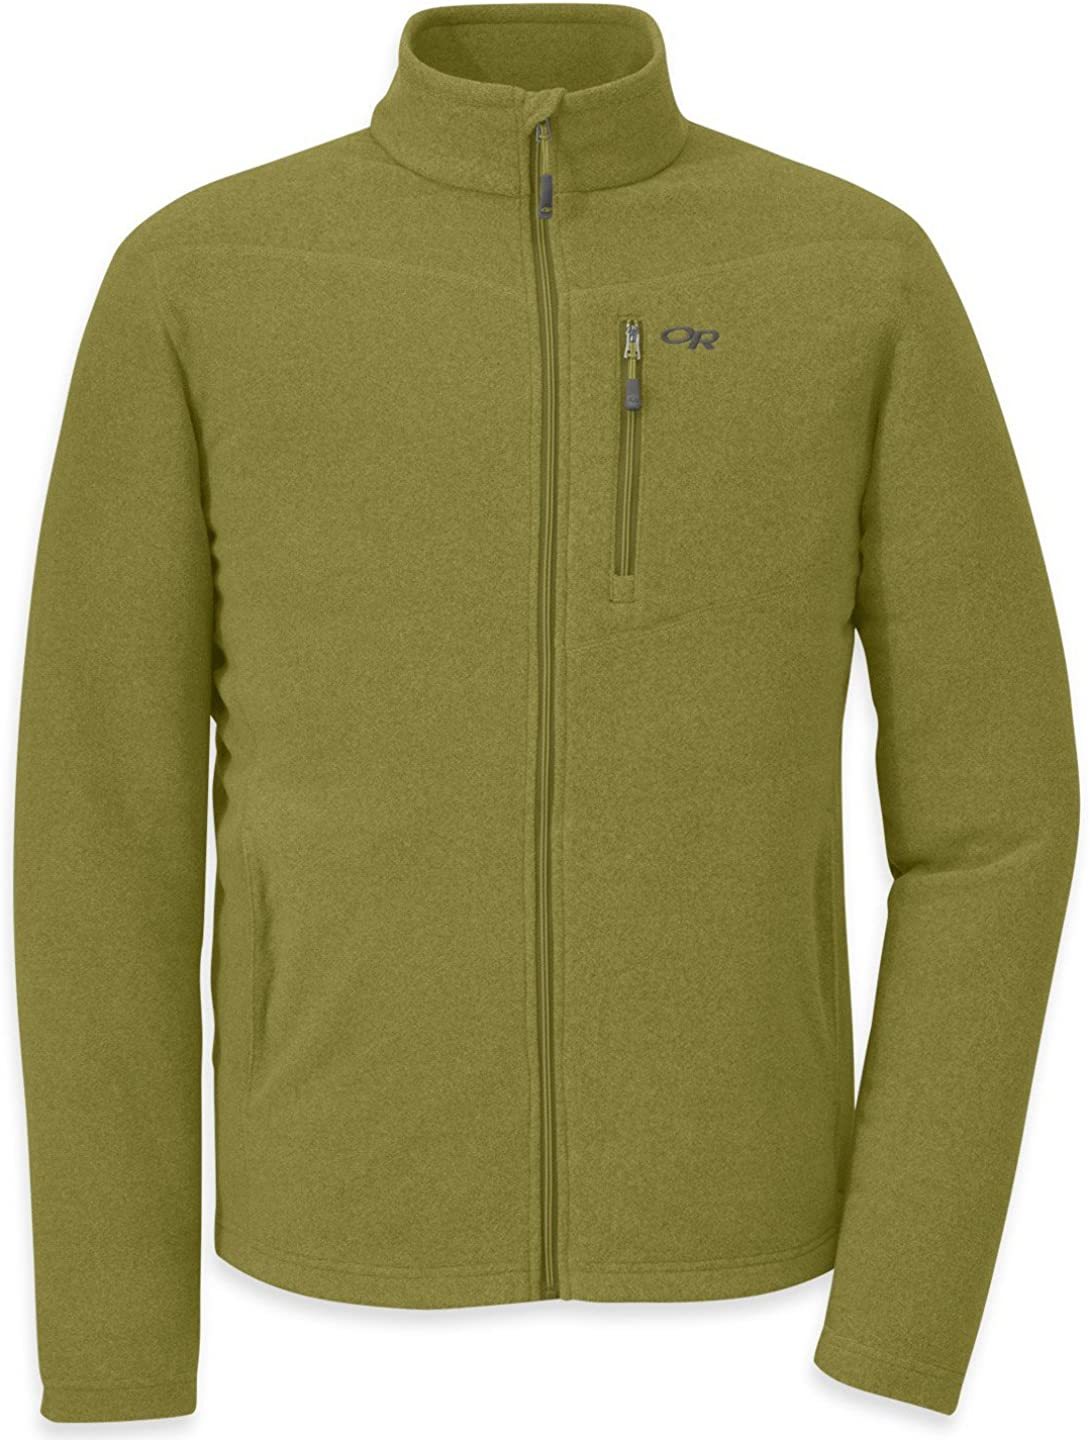 Outdoor Research Soleil Jacket